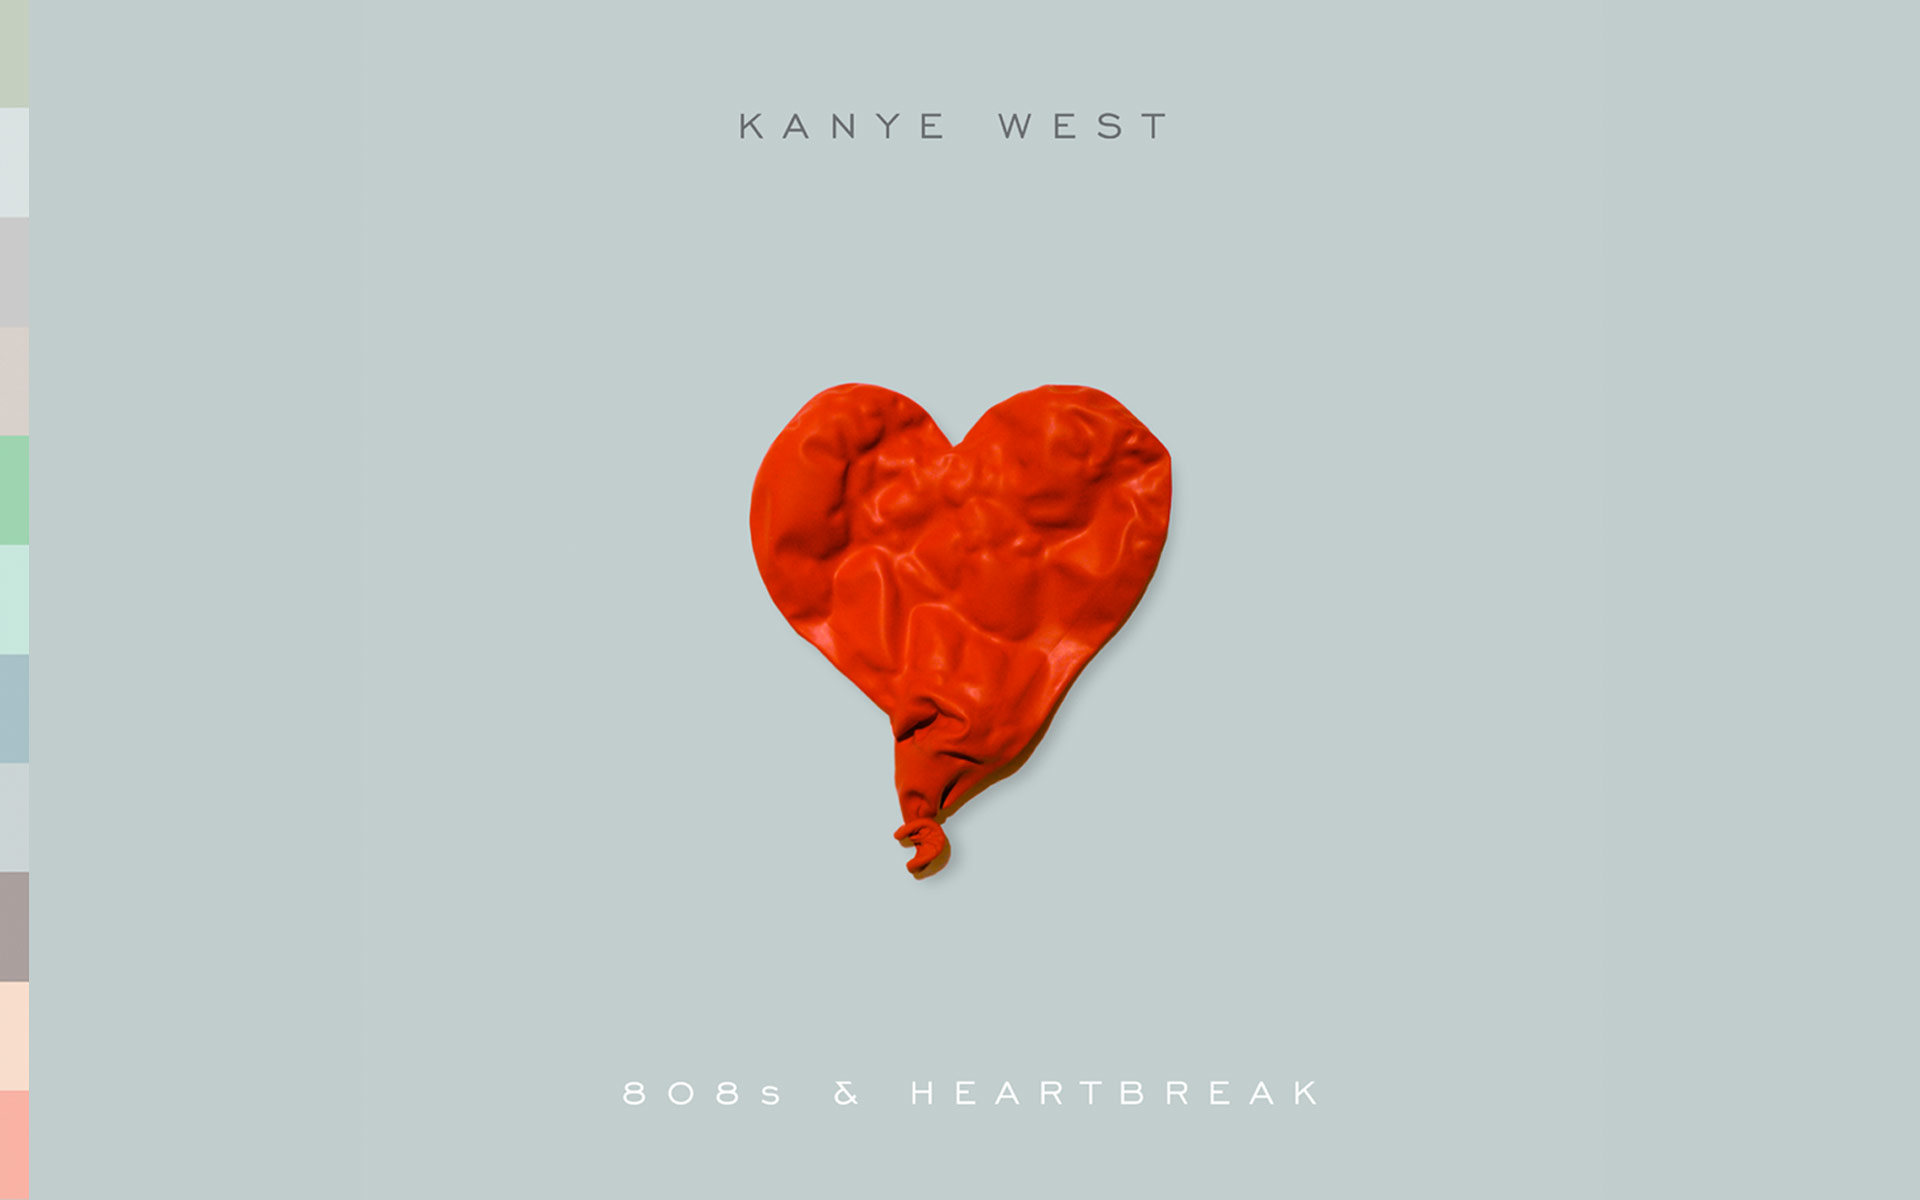 808s and heartbreak wallpaper wallpapersafari